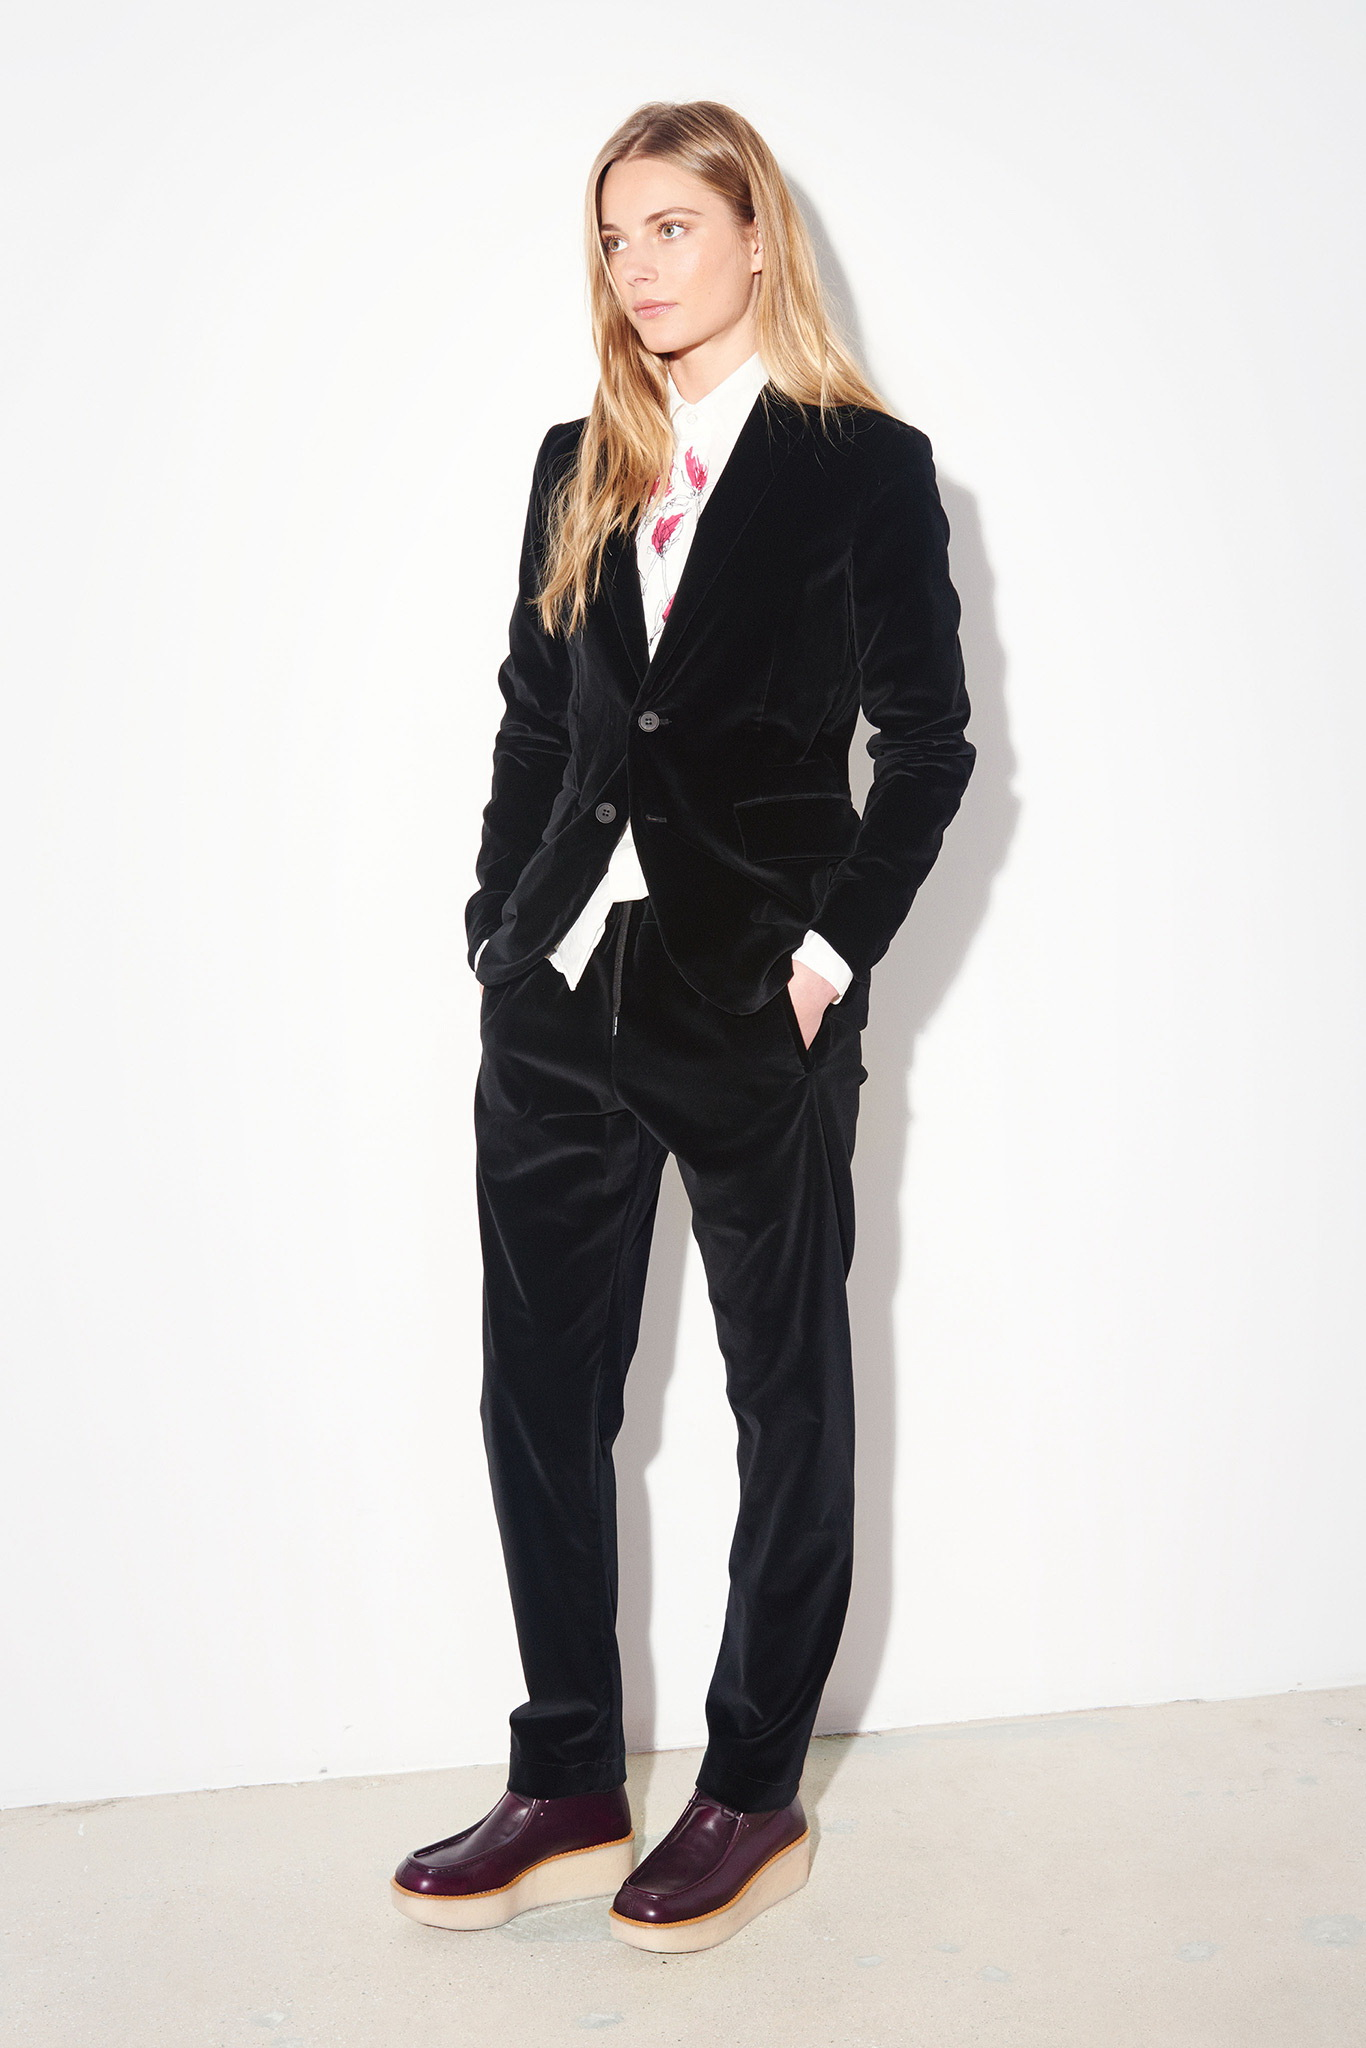 womens black pants suits photo - 1